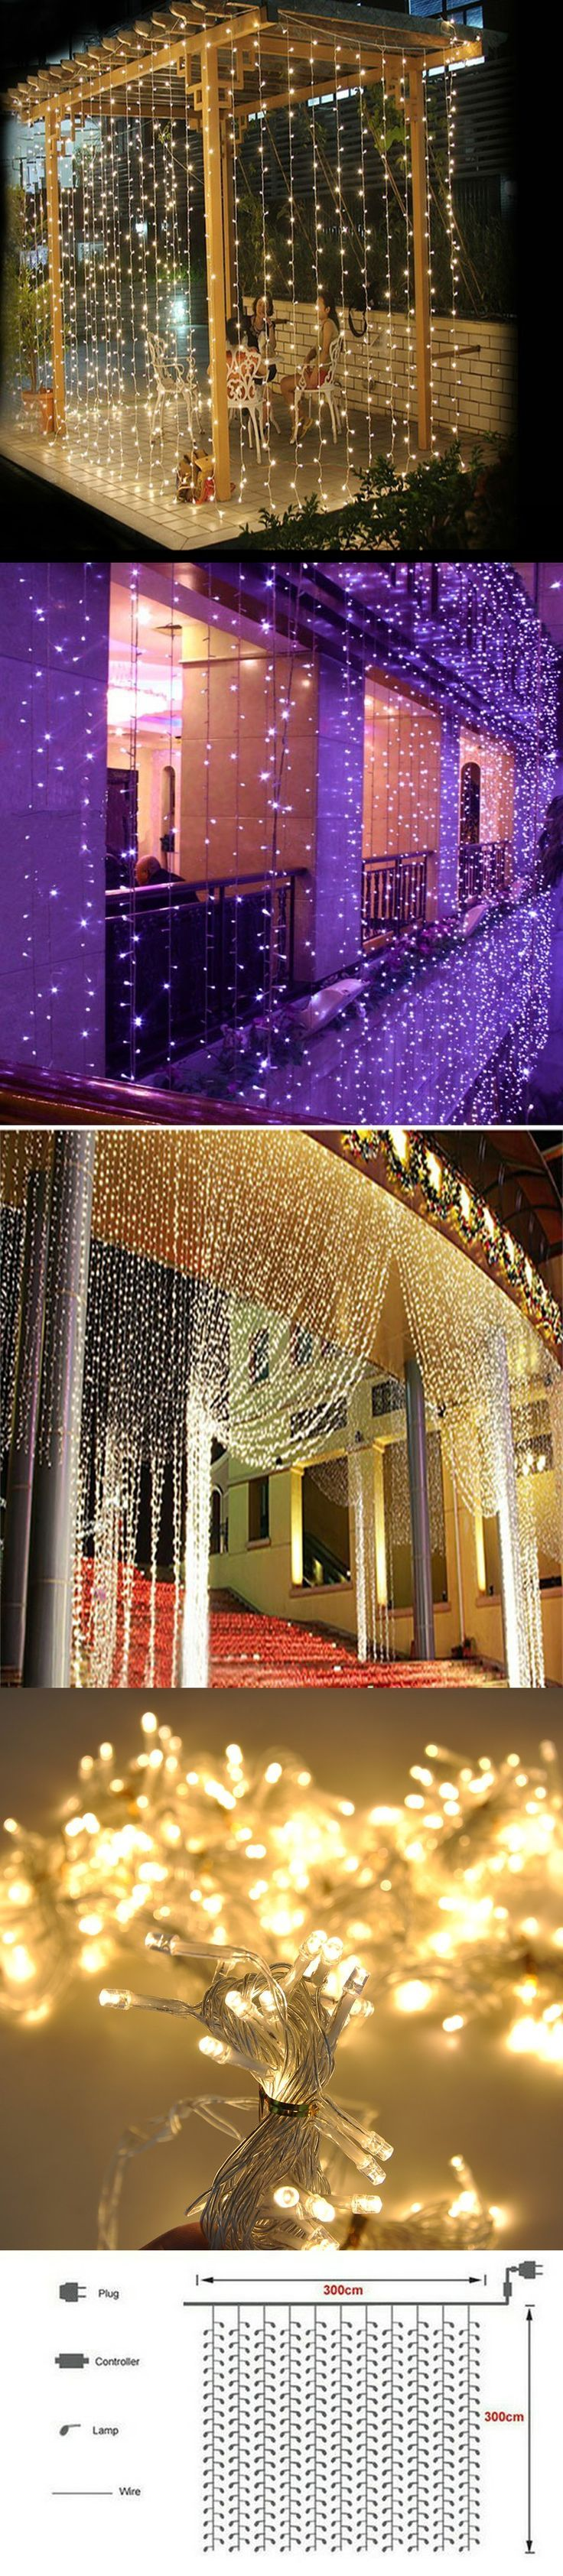 Curtain lights for weddings - 2016 3m X 3m 300 Led Outdoor Home Warm White Christmas Decorative Xmas String Fairy Curtain Garlands Party Lights For Wedding